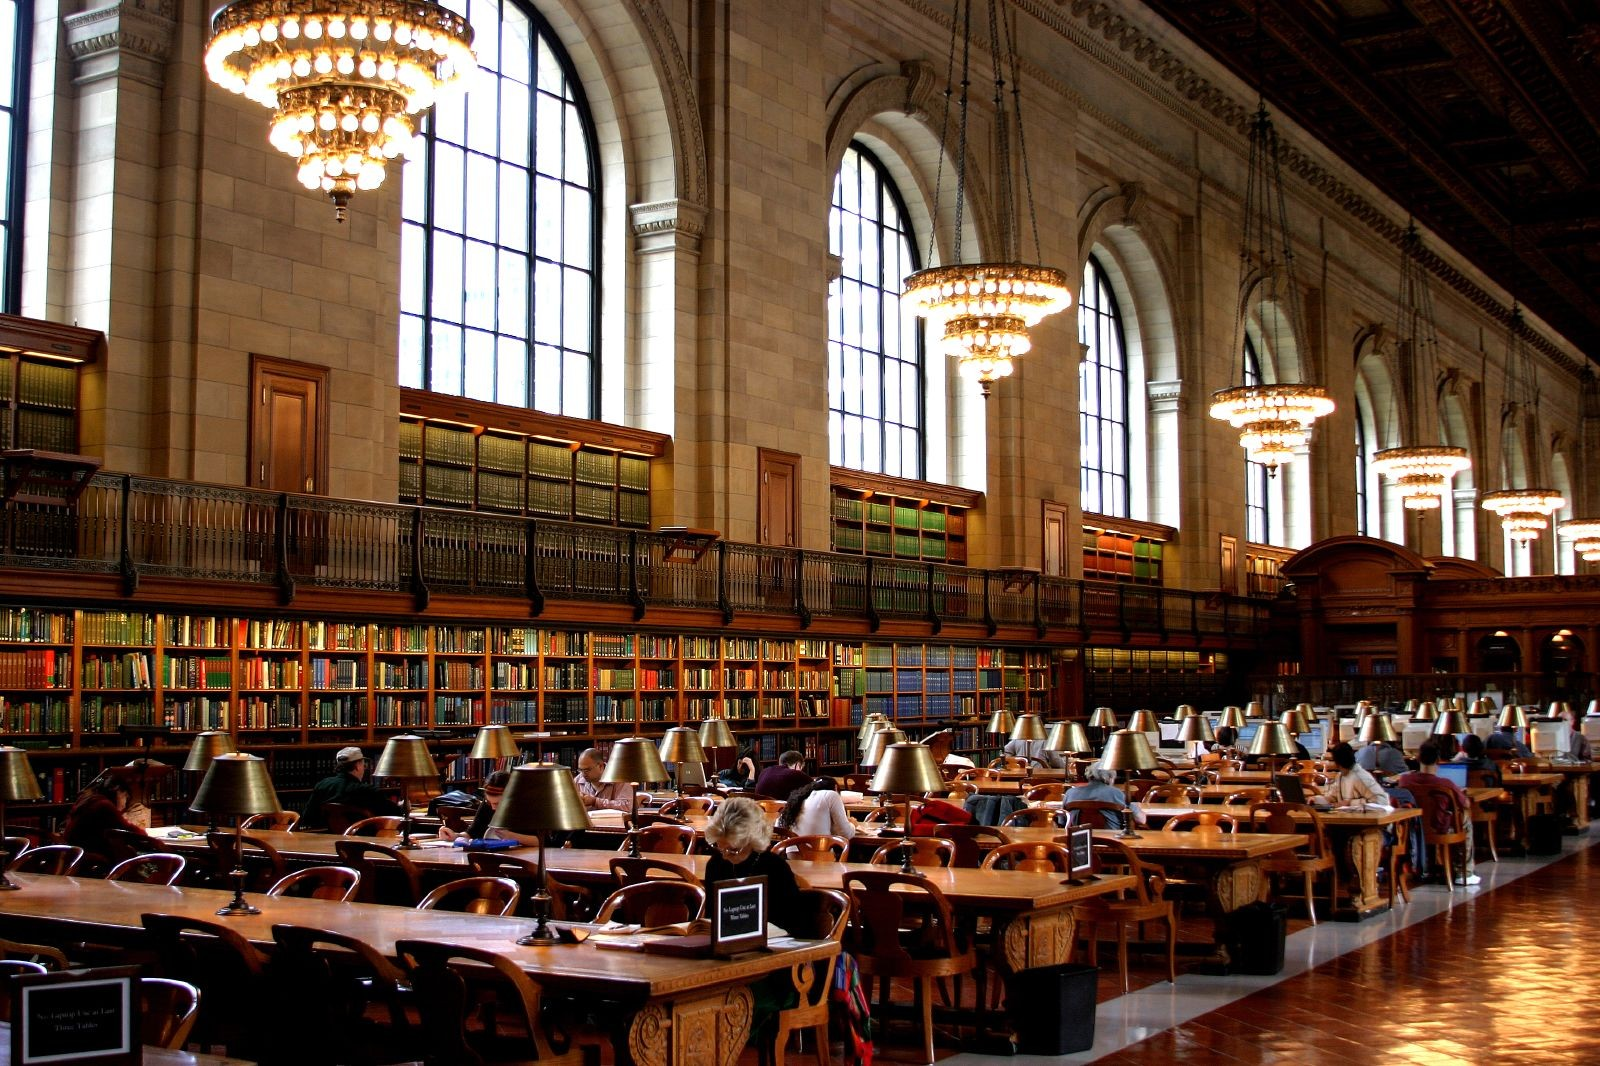 More Free Summer Reading: Nine Architecture Books From Routledge Available Throughout August, Reading room at the New York Public Library. Image © Thomas Hawk